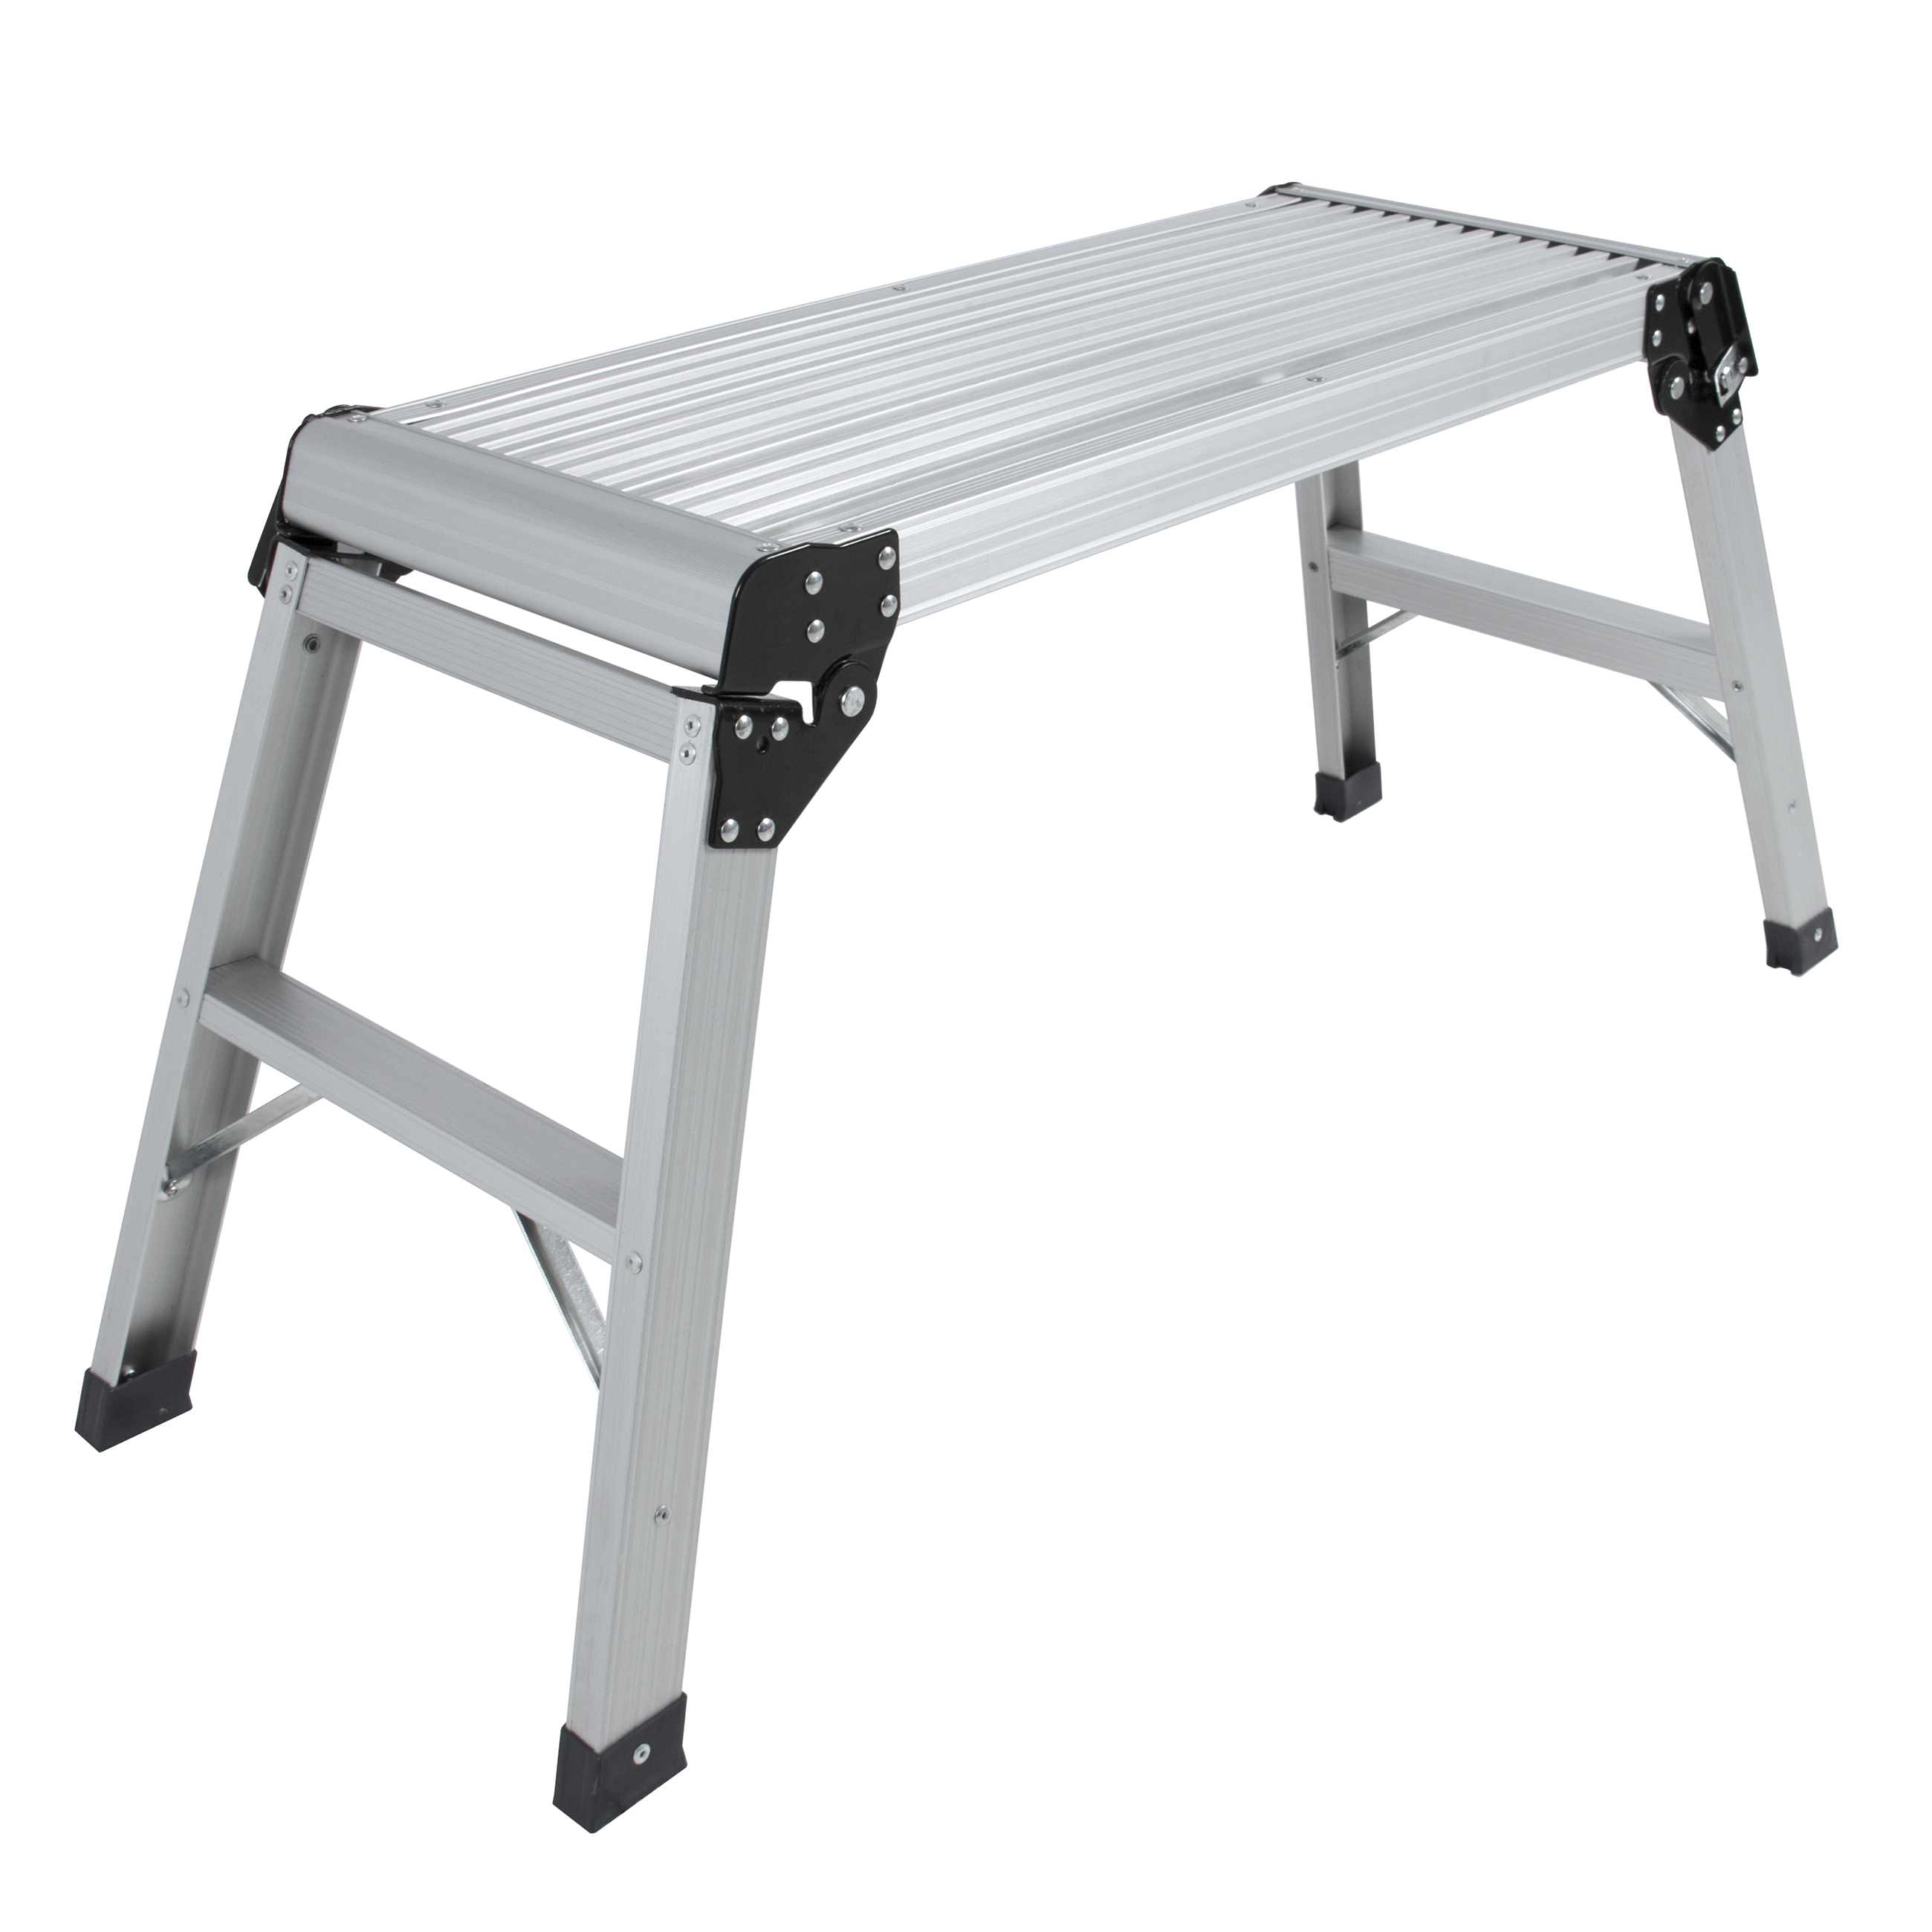 BCP Certified EN131 Aluminum Platform Drywall Step Up Folding Work Bench Stool Ladder - Walmart.com  sc 1 st  Walmart & BCP Certified EN131 Aluminum Platform Drywall Step Up Folding Work ... islam-shia.org